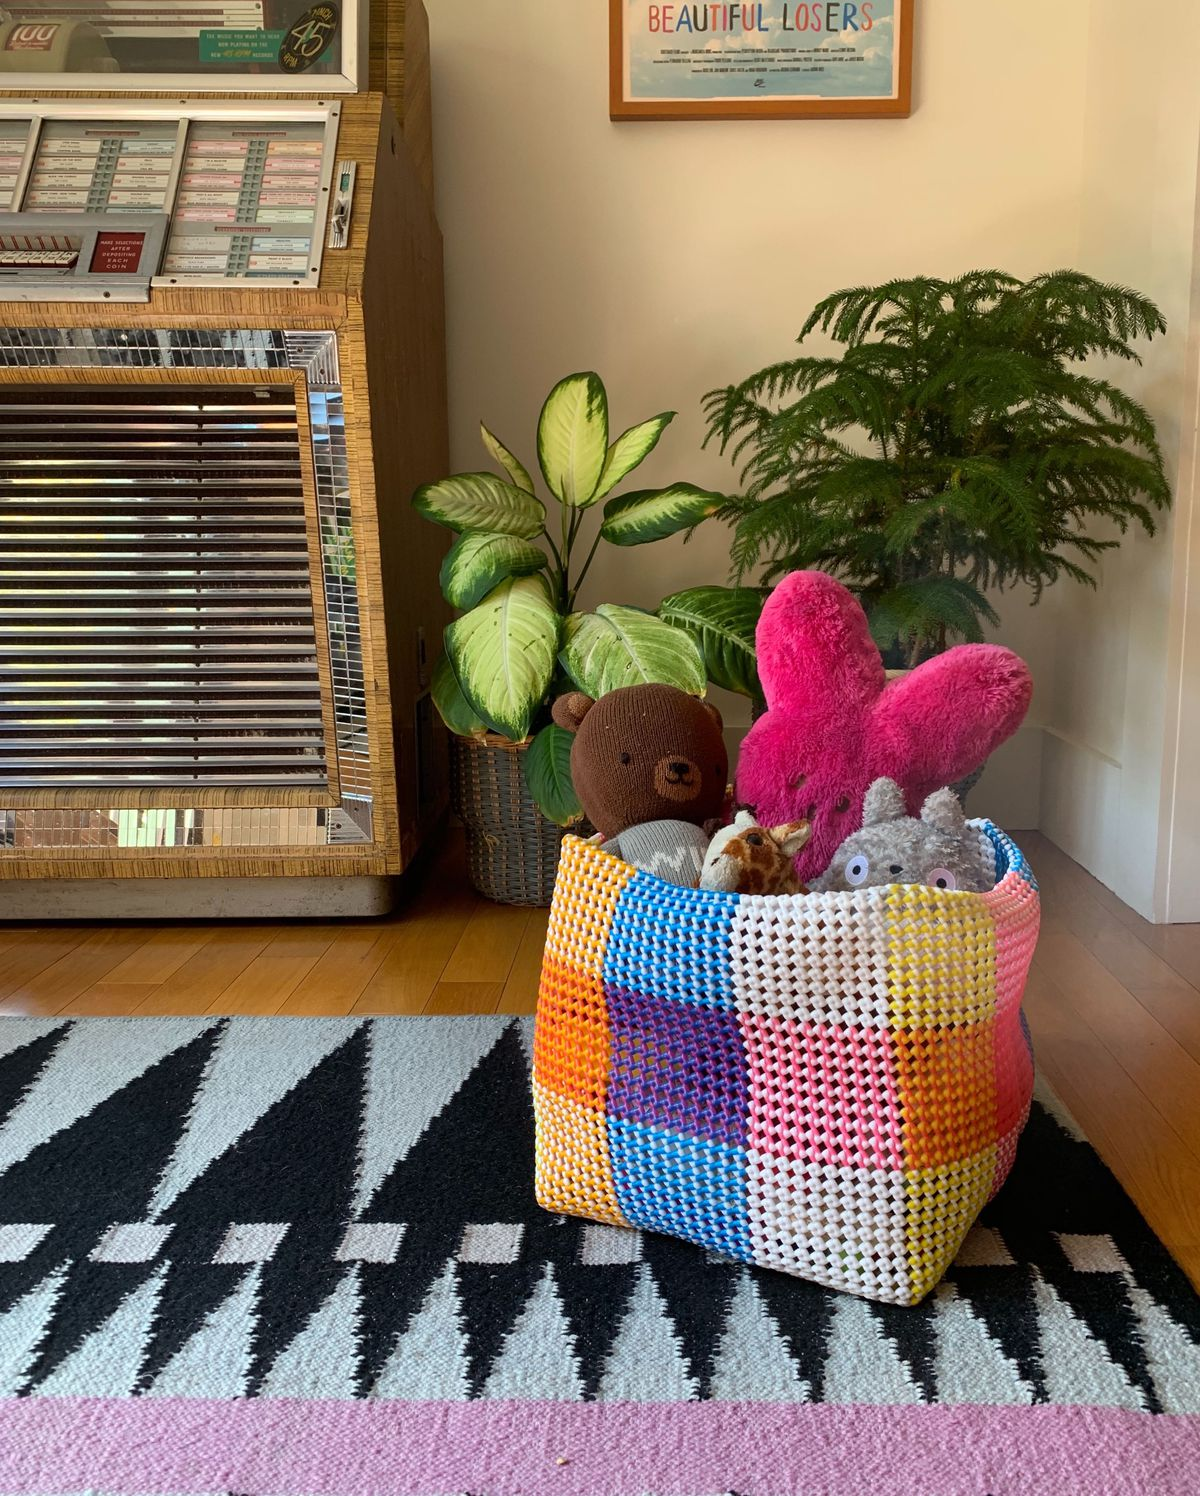 Colorful basket filled with stuffed animals.